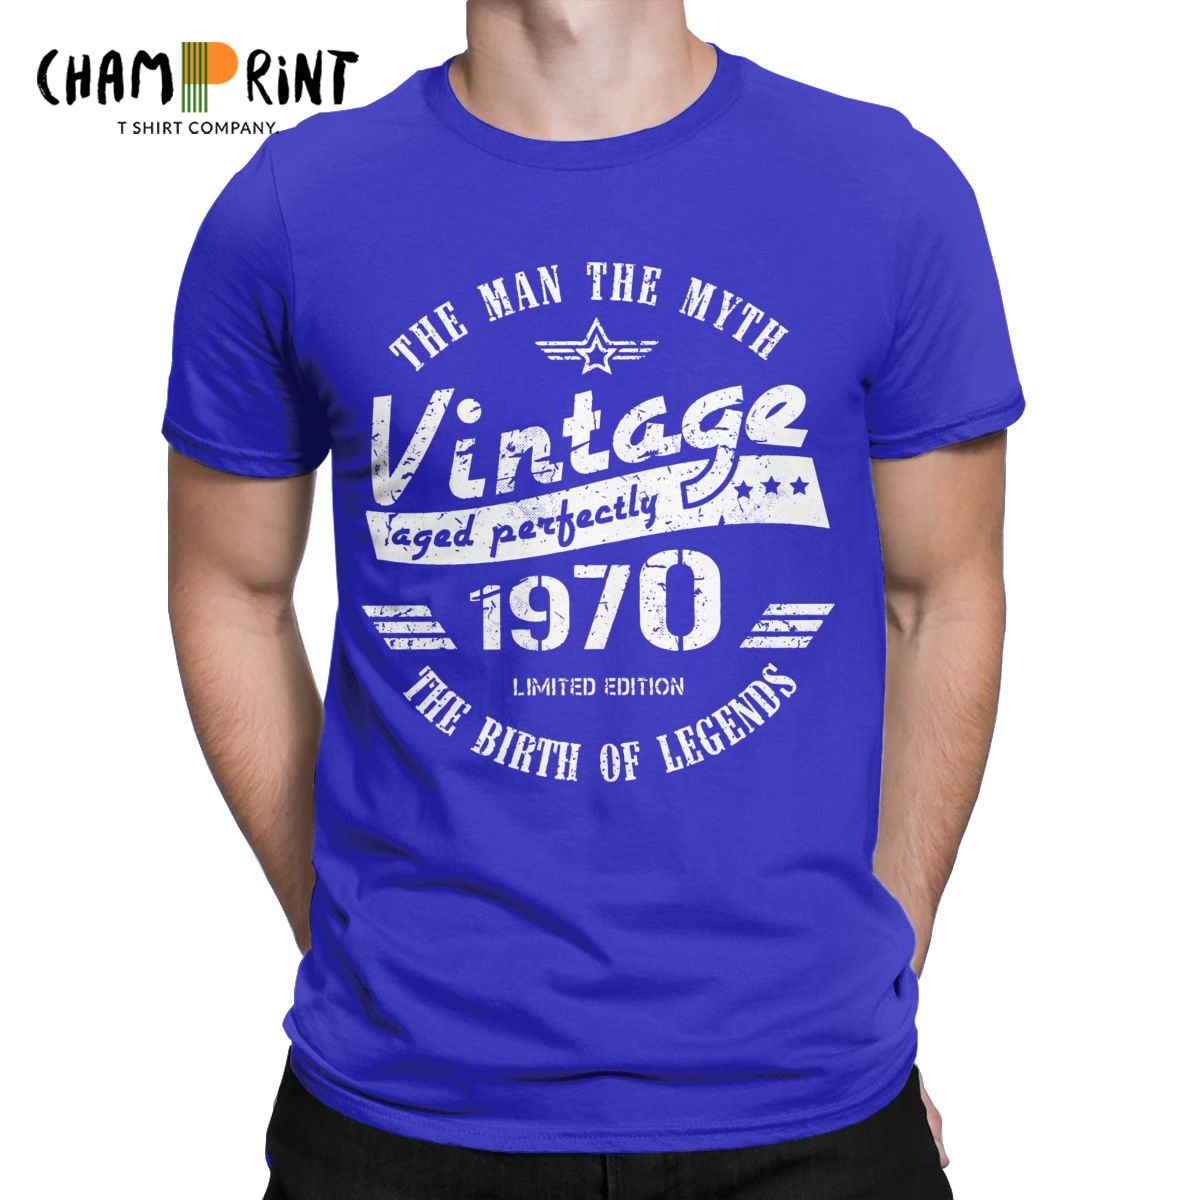 Retro <font><b>Vintage</b></font> <font><b>1970</b></font> T Shirts for Men <font><b>Vintage</b></font> T-Shirts Round Neck 50th Birthday Gift Idea Tee Shirt 50 Yeas Old Tops Plus Size image